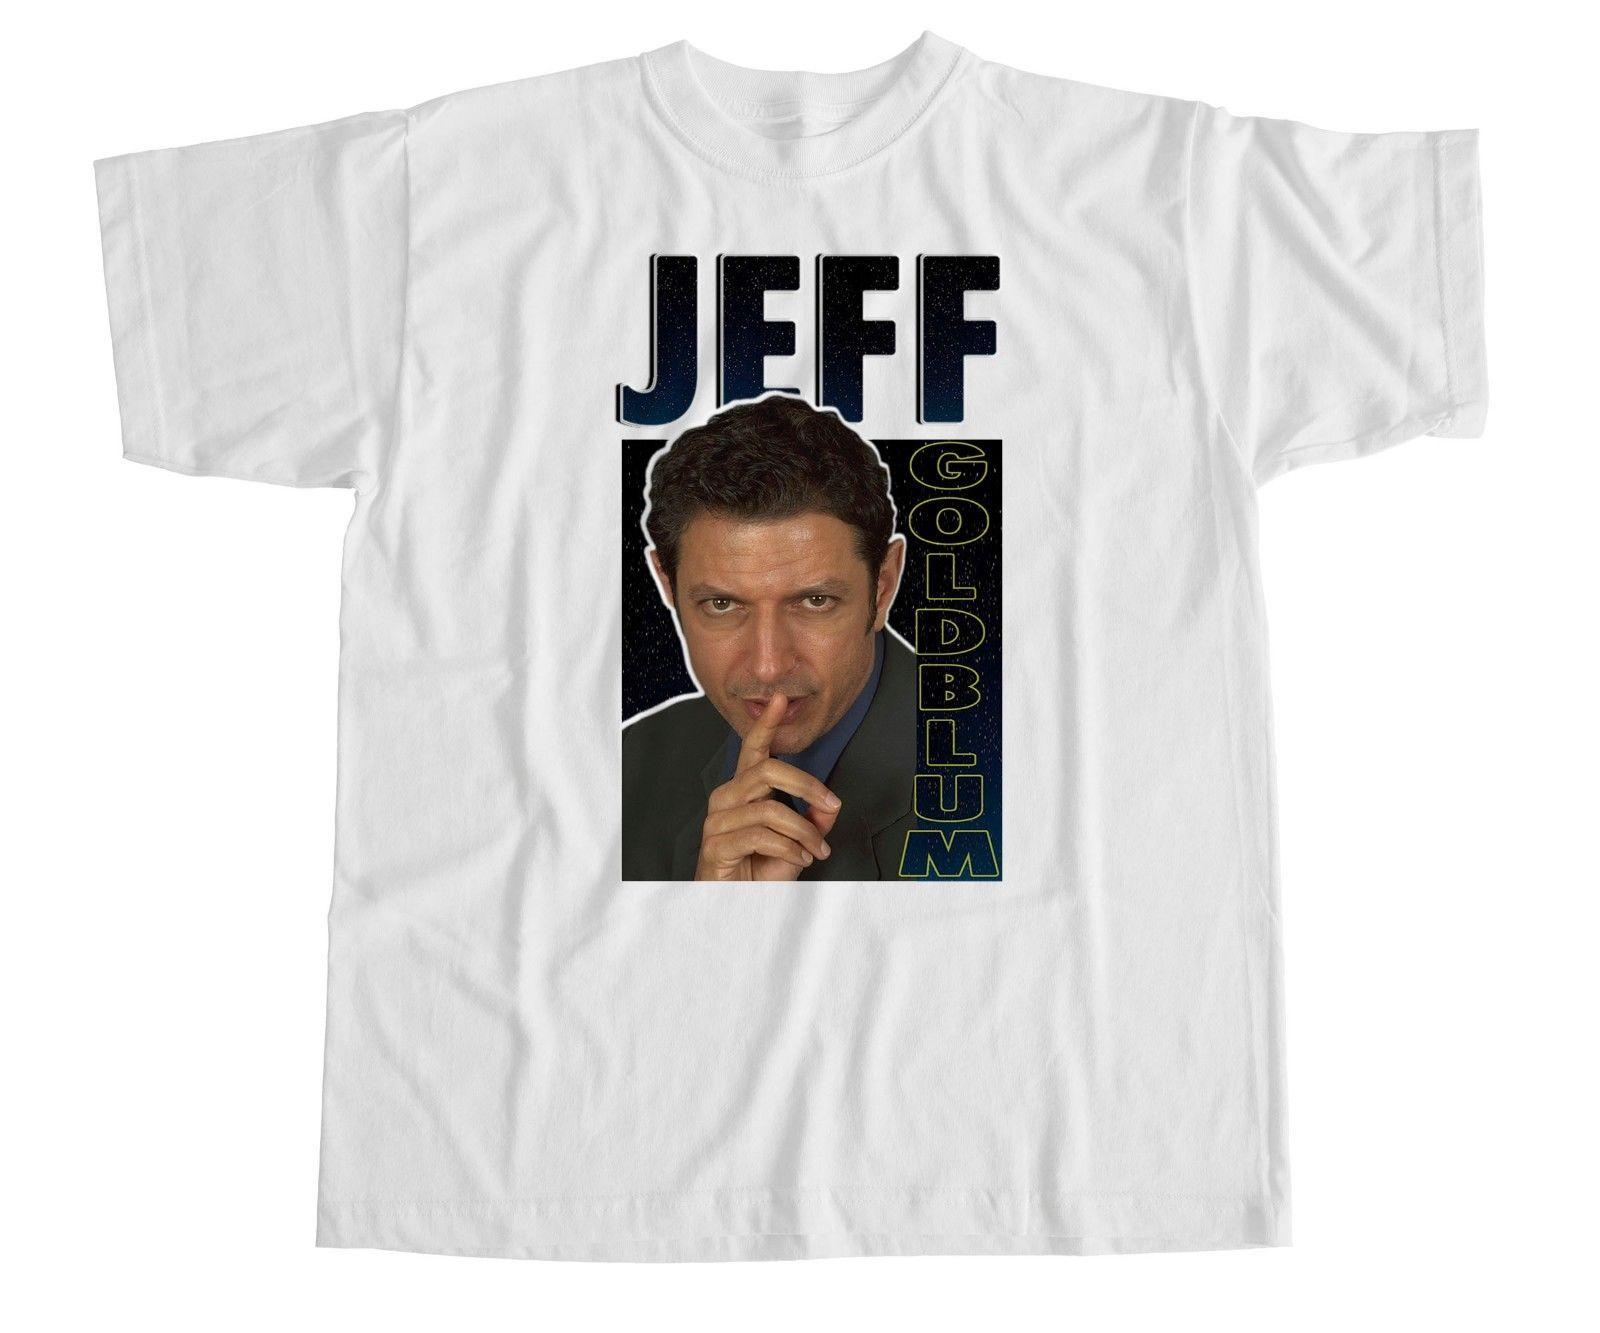 dc6dfe1a Jeff Goldblum T Shirt Jurassic Park 90s Cult One Tee A Day Random Graphic  Tees From Firstchoicemedia, $11.54| DHgate.Com